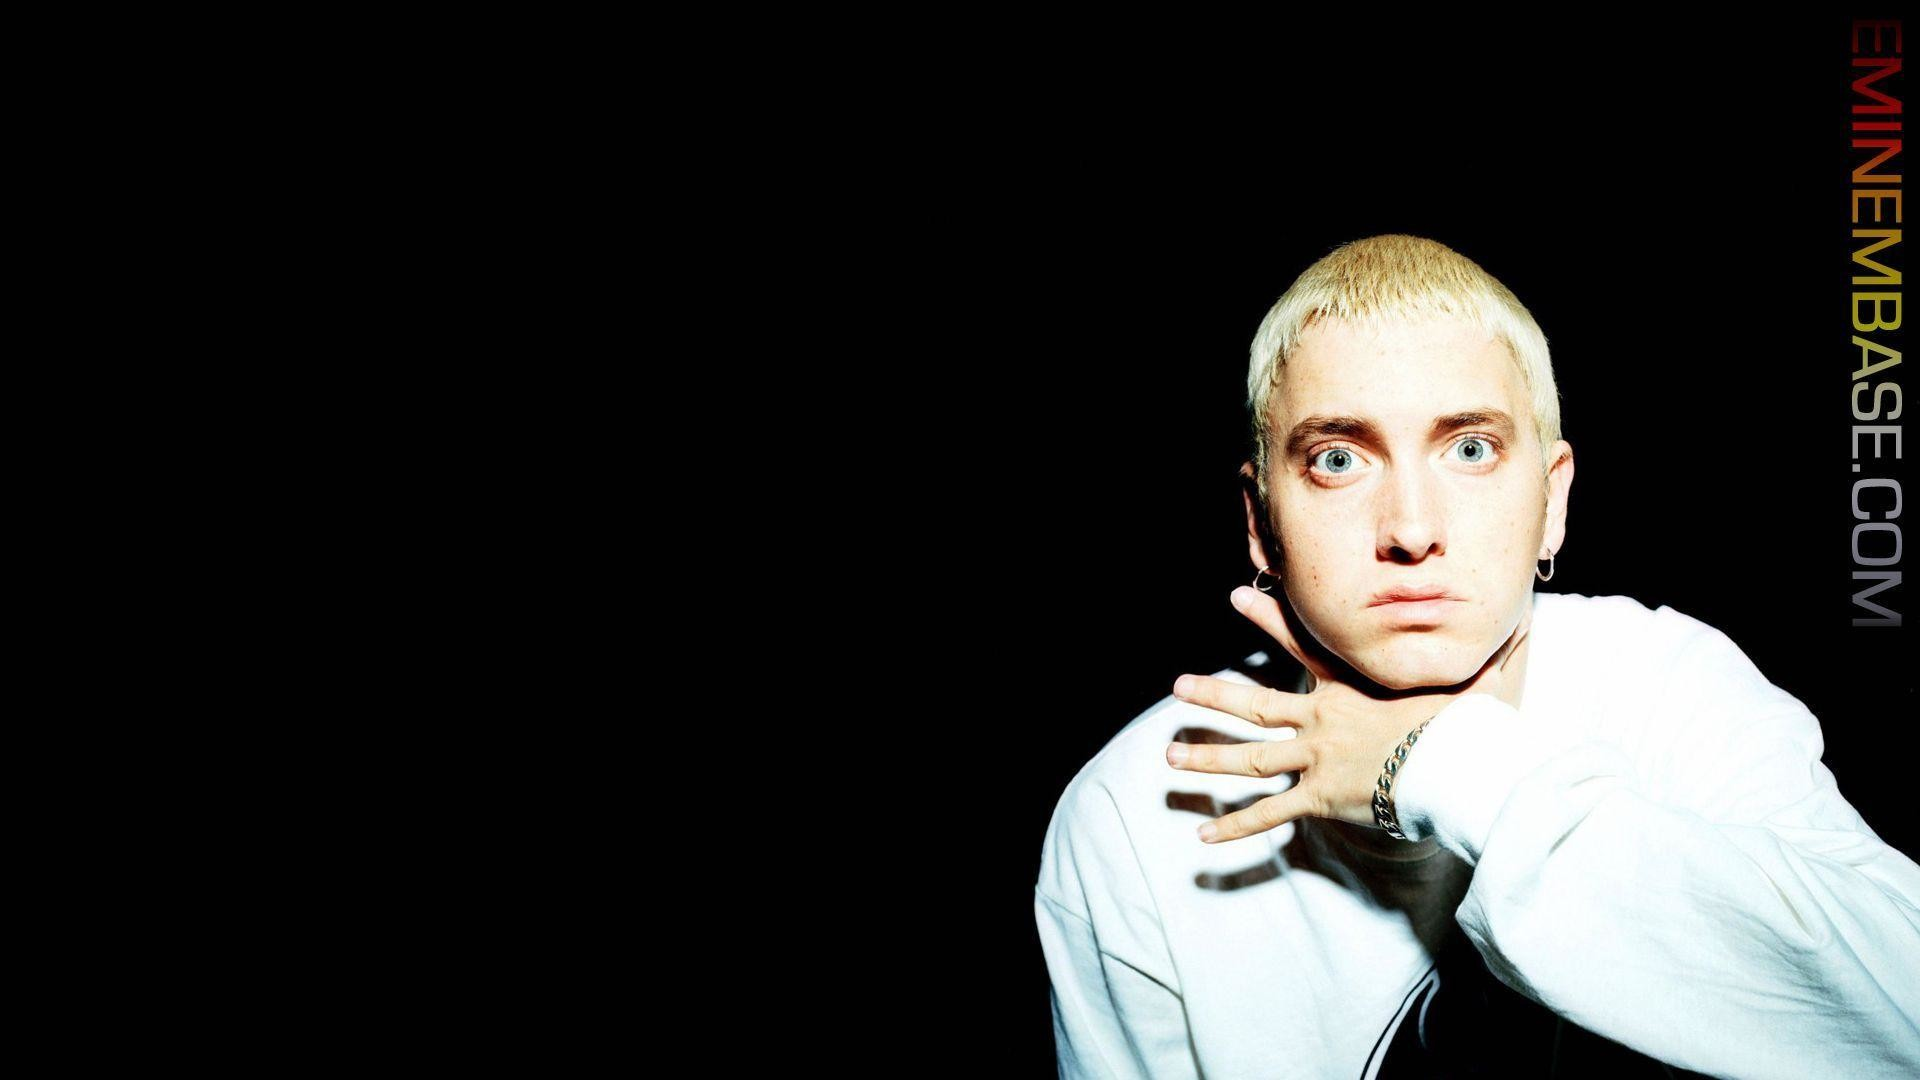 1920x1080 EMINEM SLIM SHADY Hip Hop Rap Q Wallpaper